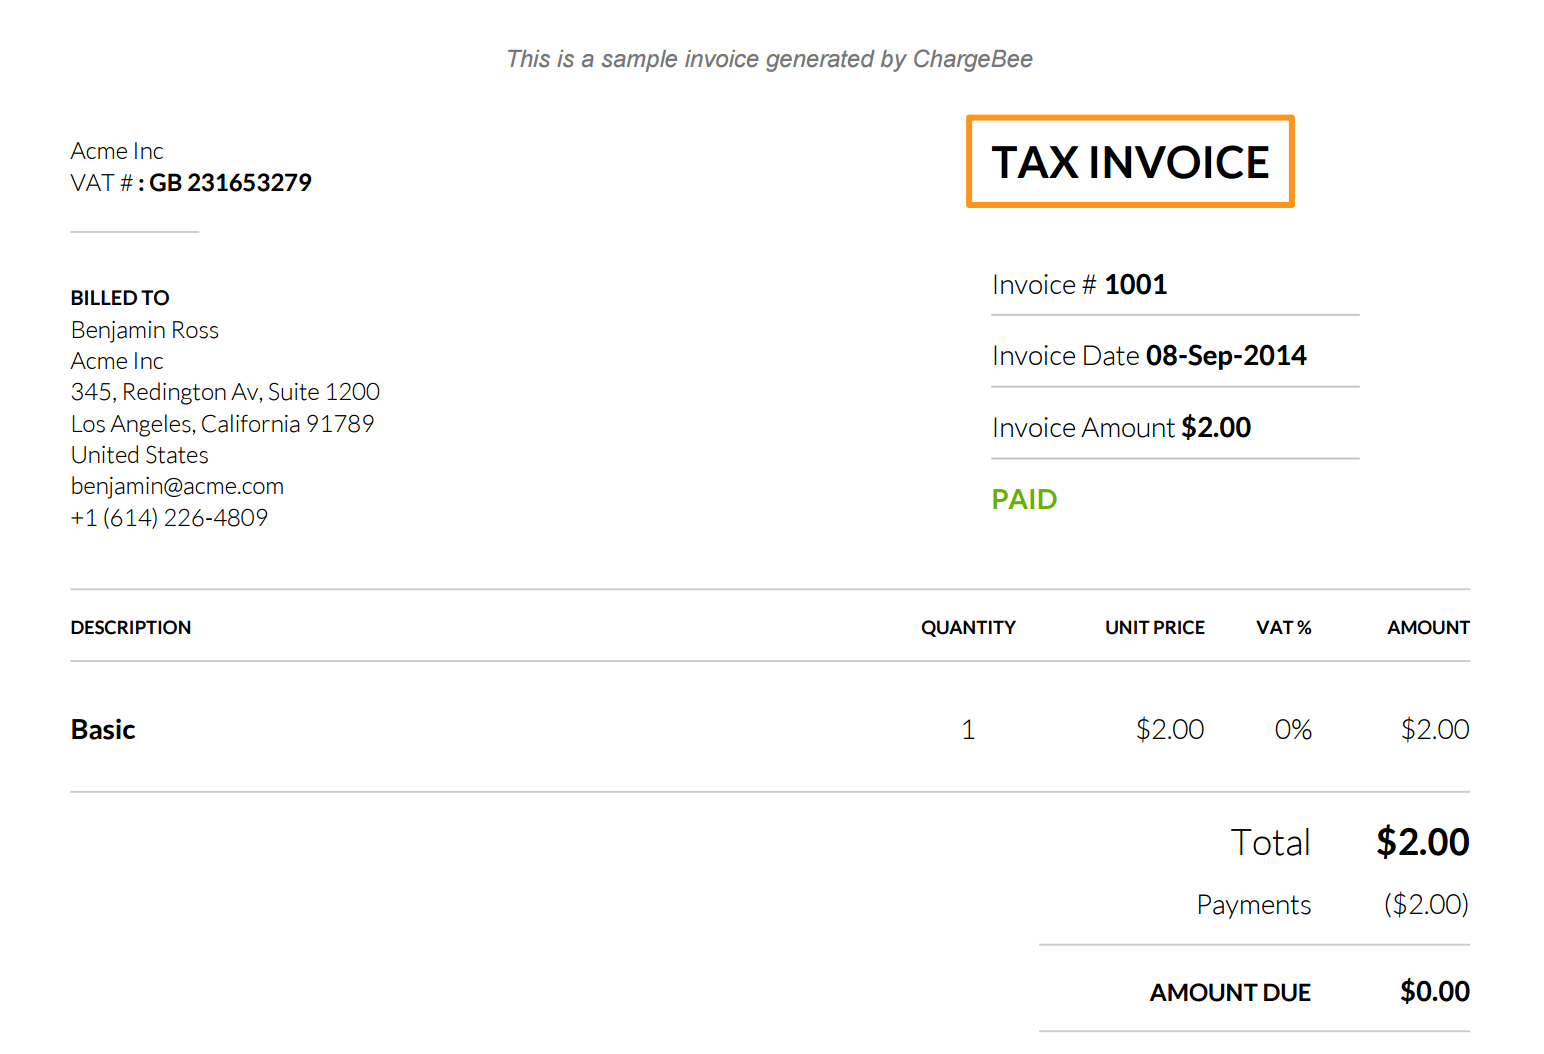 Opportunitycaus  Sweet Customizing Invoice Title With Marvelous Back To Timeline With Awesome Wageworks Ez Receipts Also Custom Receipt Books In Addition Sales Receipt Template And American Depository Receipts As Well As Gross Receipts Tax Additionally Autozone Return Without Receipt From Chargebeecom With Opportunitycaus  Marvelous Customizing Invoice Title With Awesome Back To Timeline And Sweet Wageworks Ez Receipts Also Custom Receipt Books In Addition Sales Receipt Template From Chargebeecom